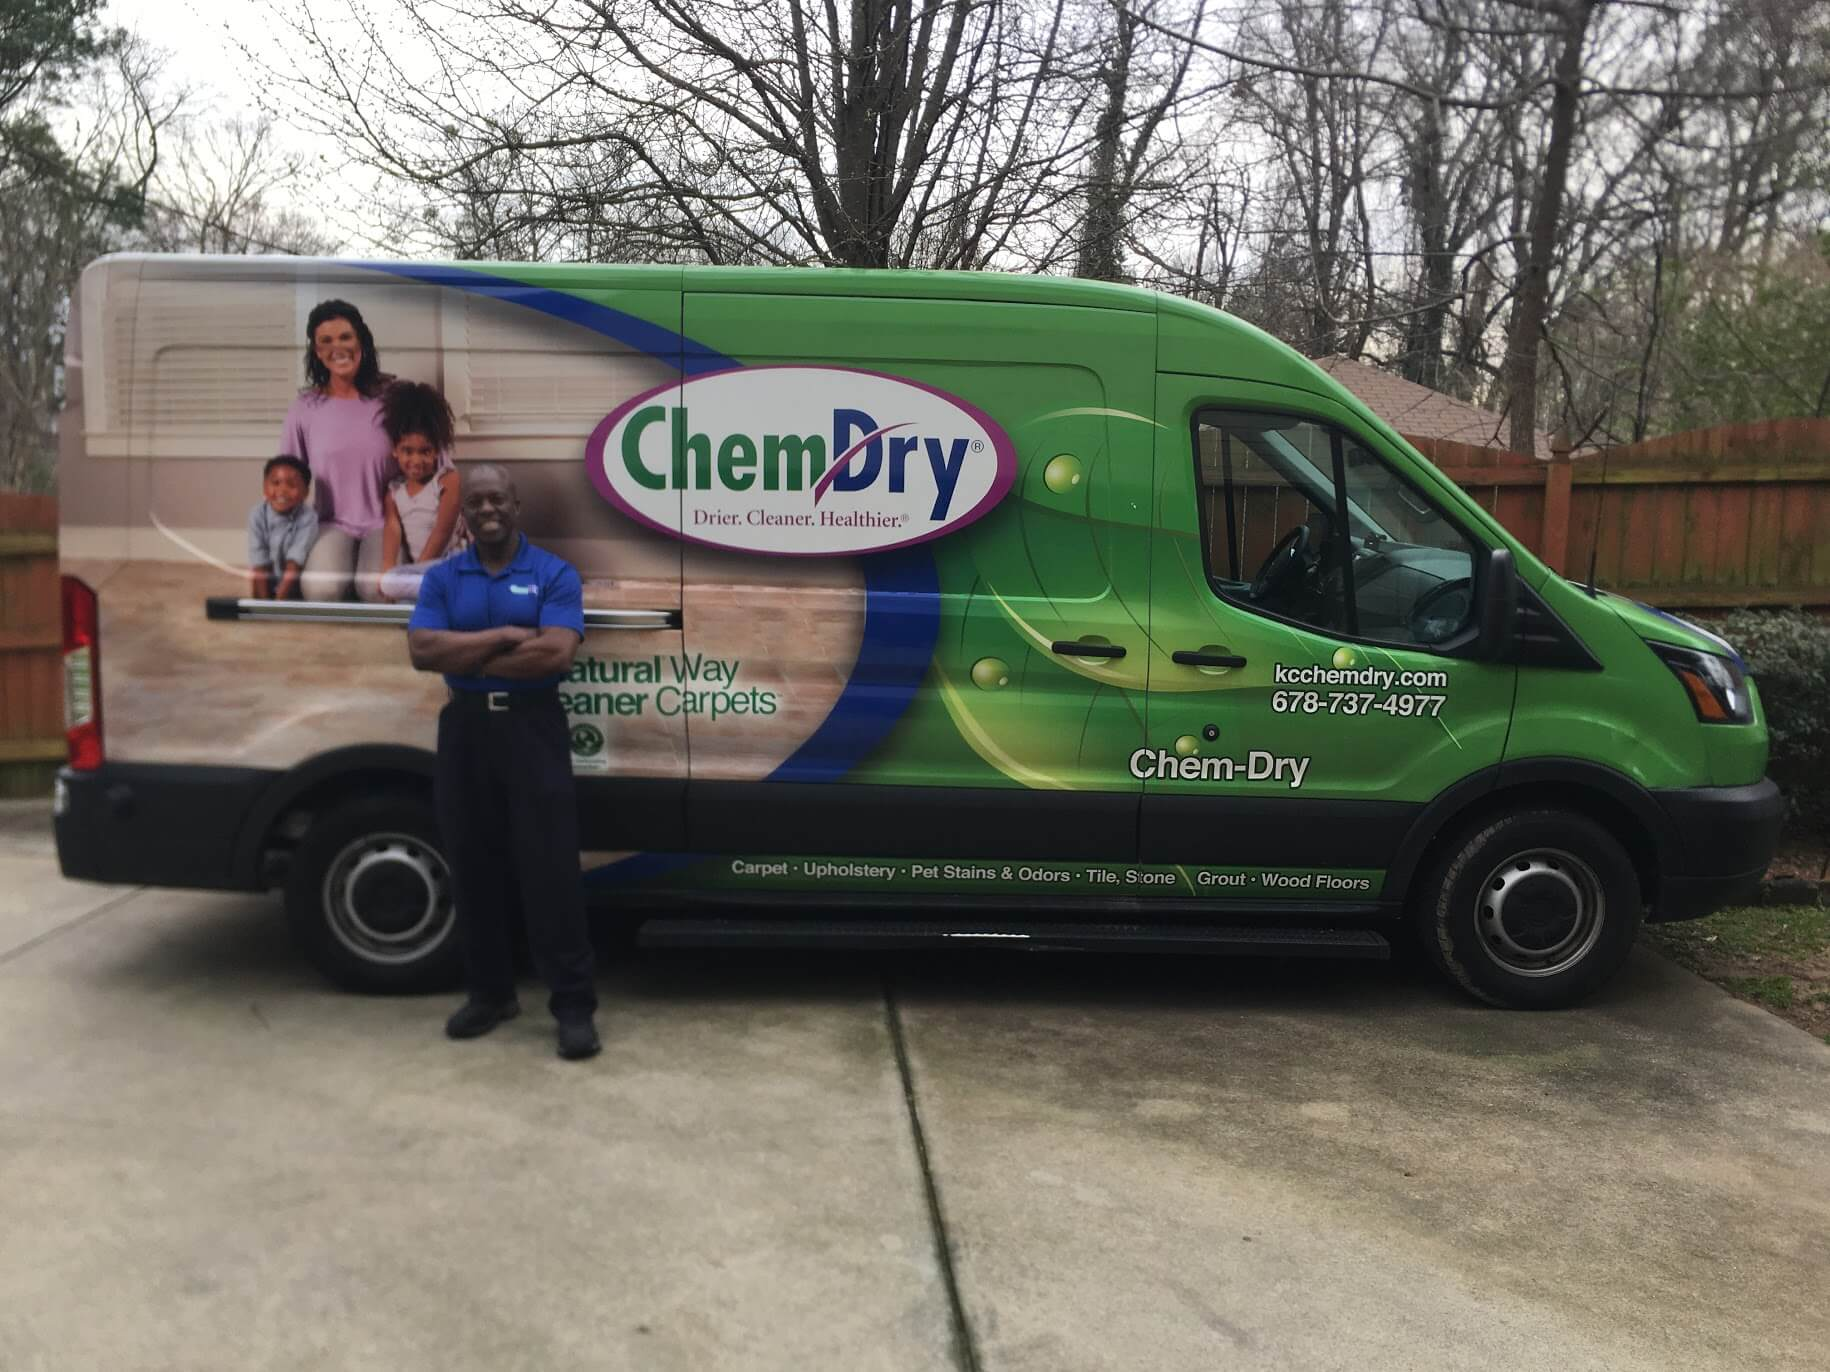 Ivan in front of green K&C Chem-Dry van